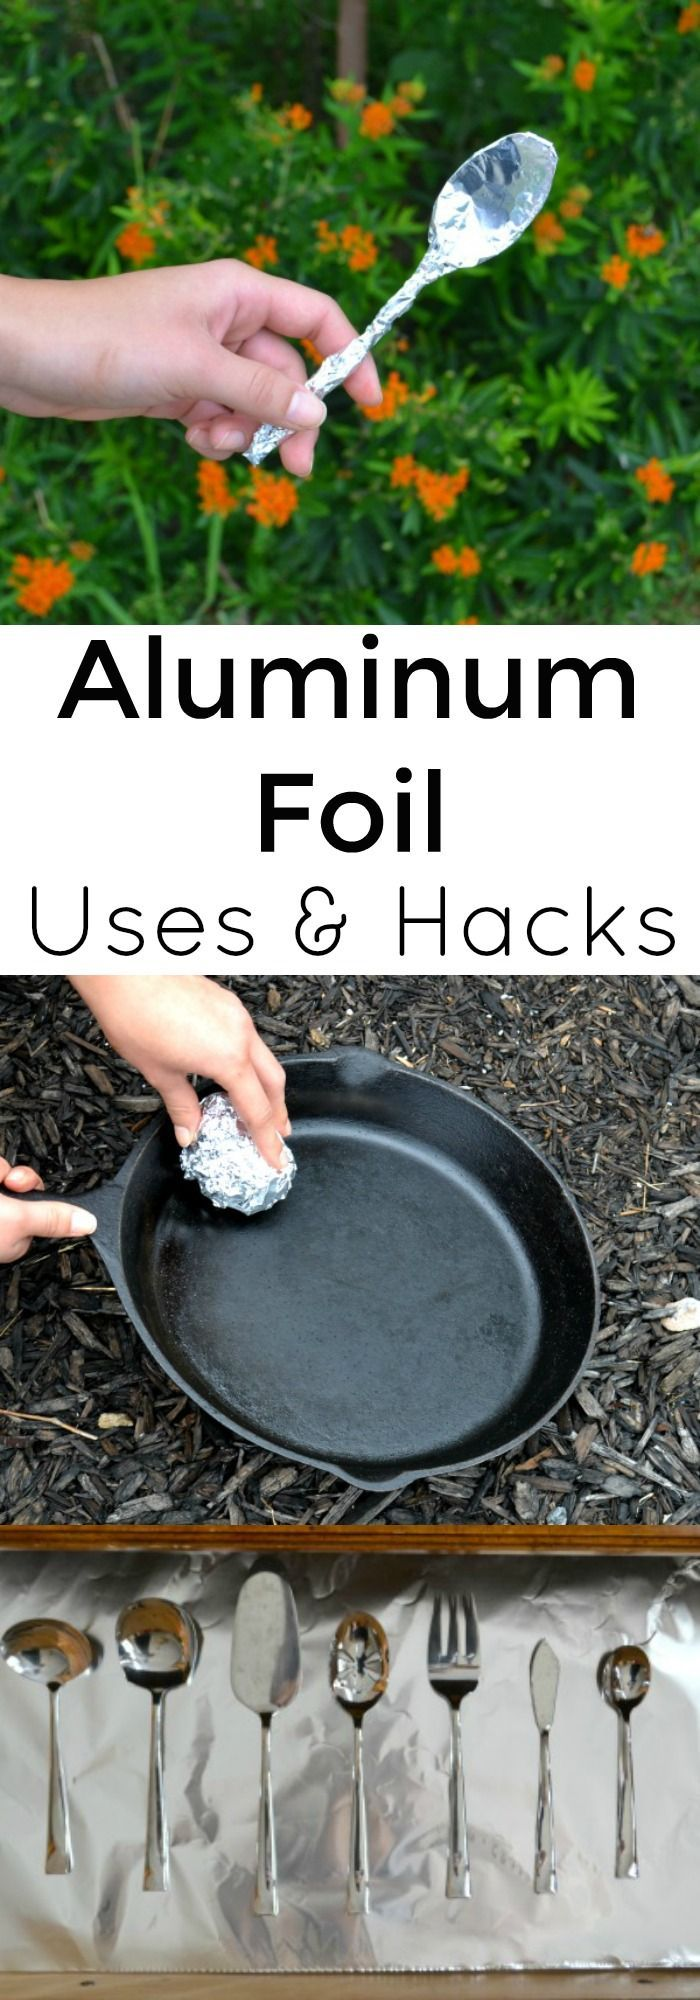 Aluminum can be used for a lot more than lining pans in the kitchen. #ad #sk